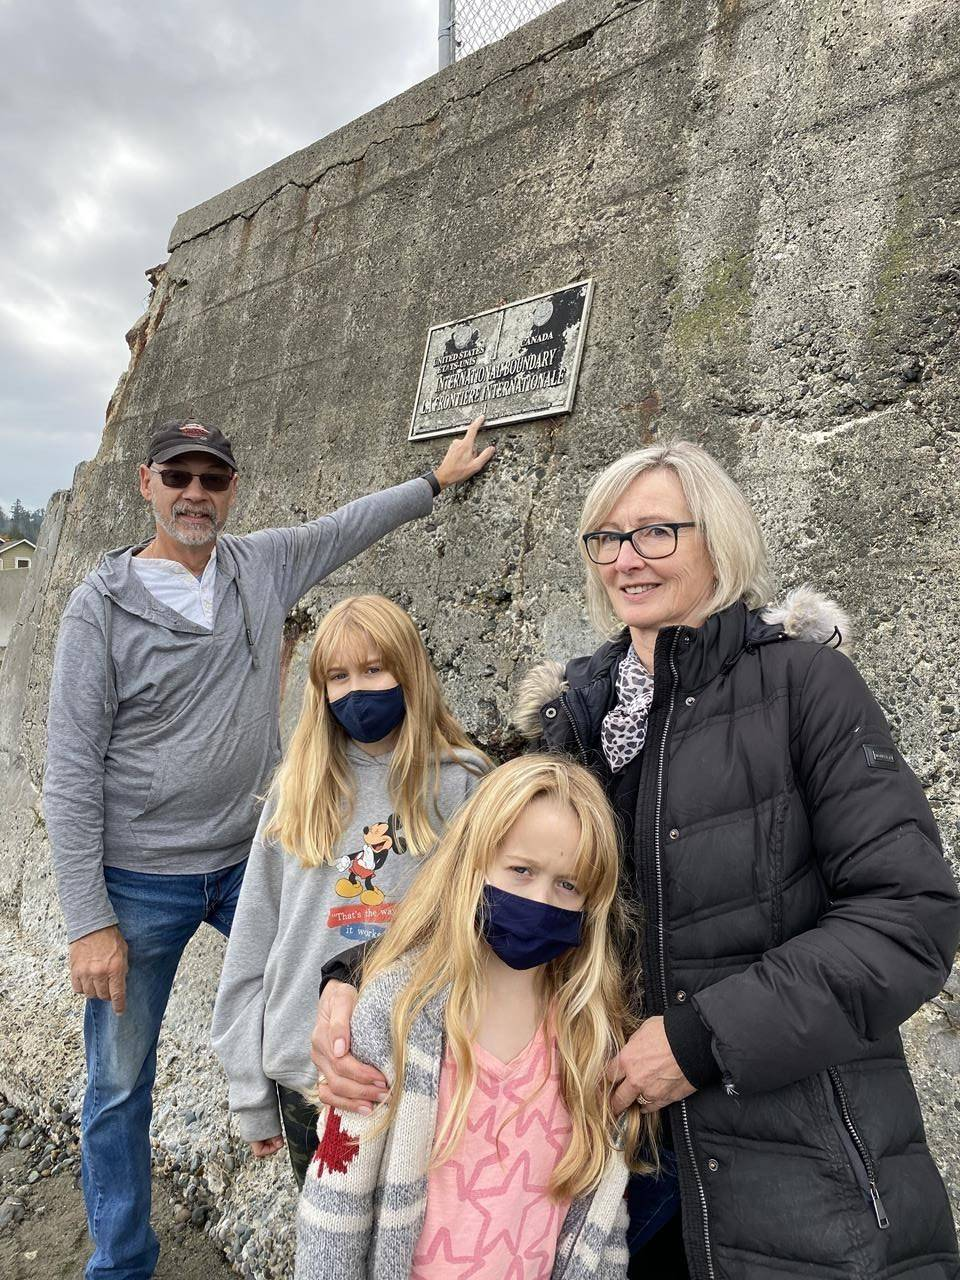 Steve Power points to a plaque noting the international boundary between Canada and the United States as he stands on the American side of a beach in Point Roberts and his wife, Patsy Reis-Power visits him with their granddaughters on the Canadian side at Centennial Beach in Delta, B.C. Power took a plane to Point Roberts, where the couple owns property, because he couldn't cross the land border due to COVID-19 restrictions that both Americans and Canadians want eased during the pandemic. THE CANADIAN PRESS/Camille Bains